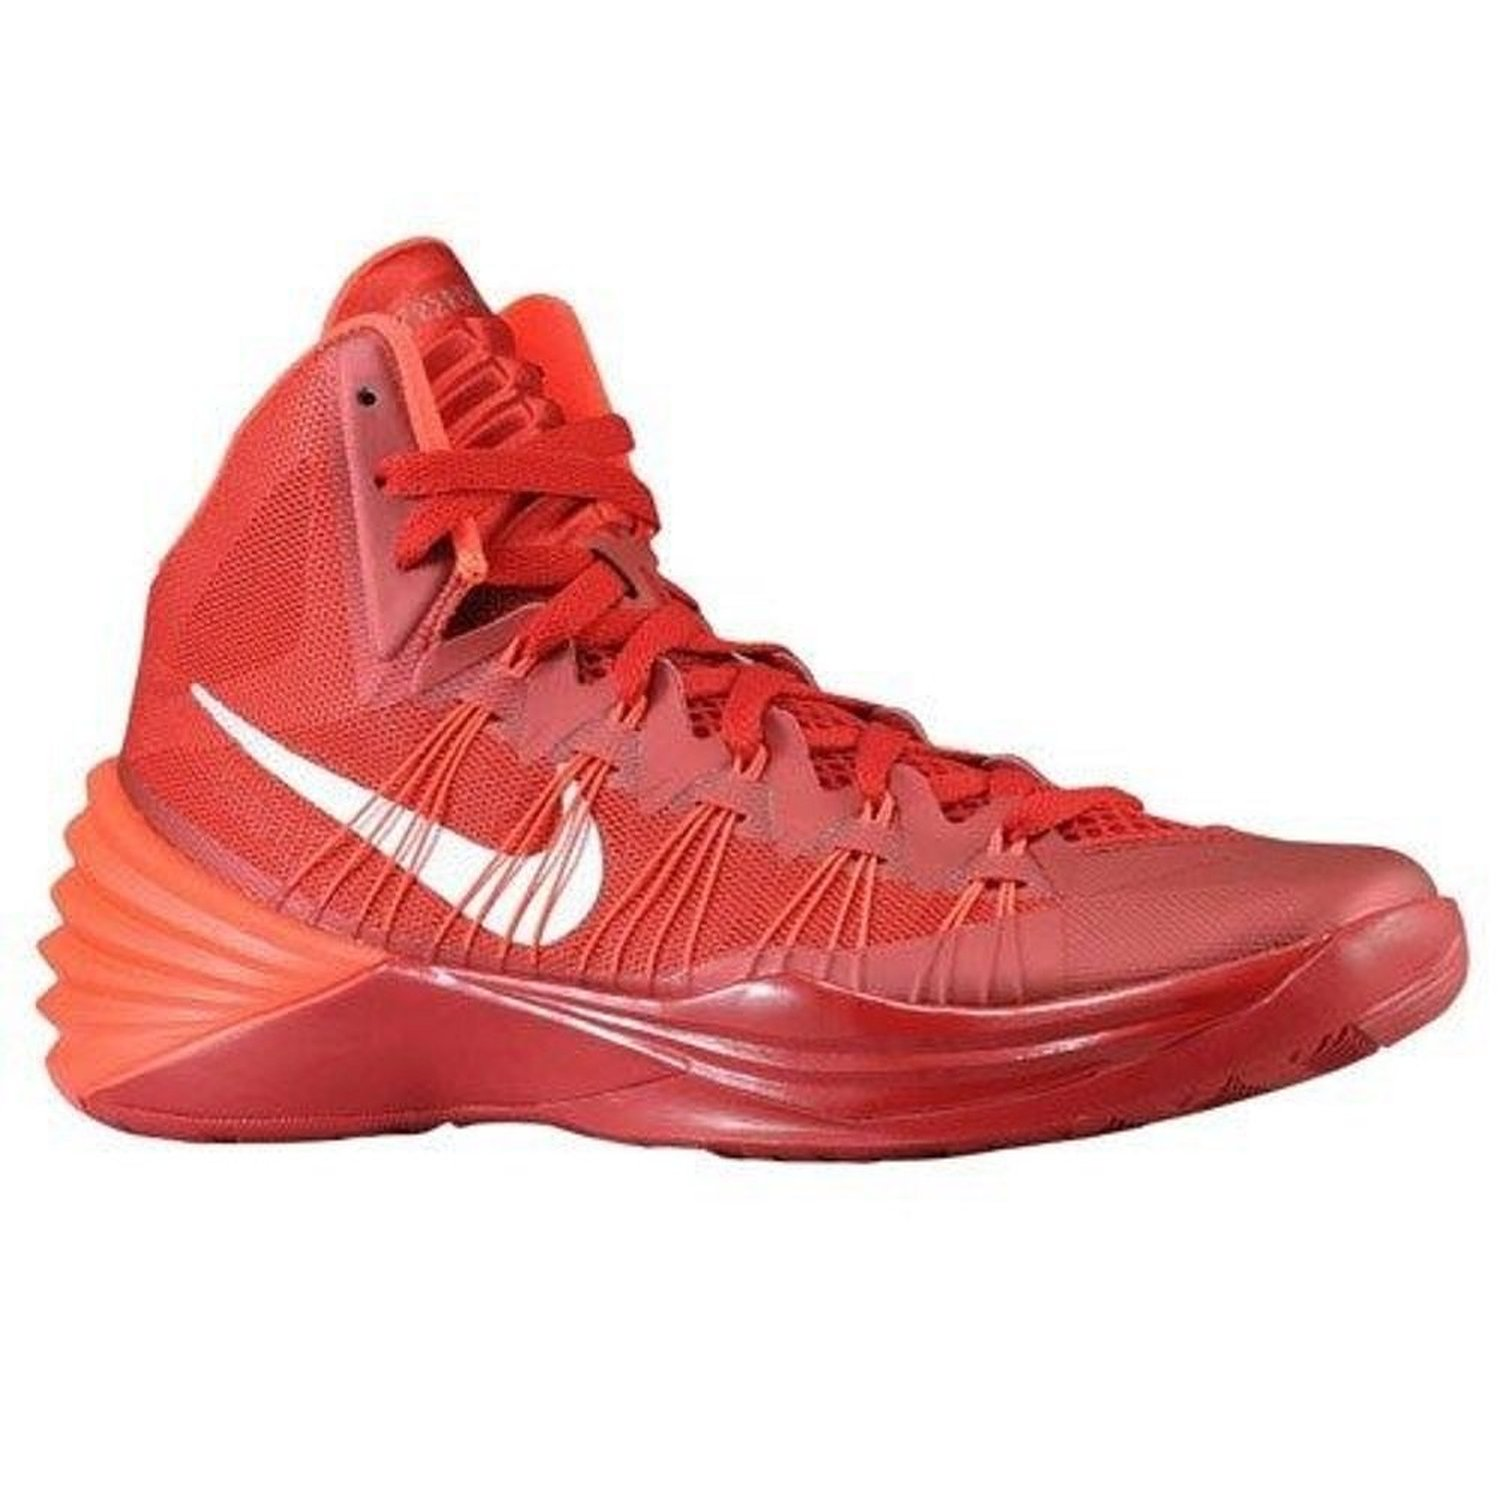 713d53ca0acf Mens Nike Hyperdunk 2013 Tb Shoes Size 13.5 Gym Red Silver Crimson 584433  600